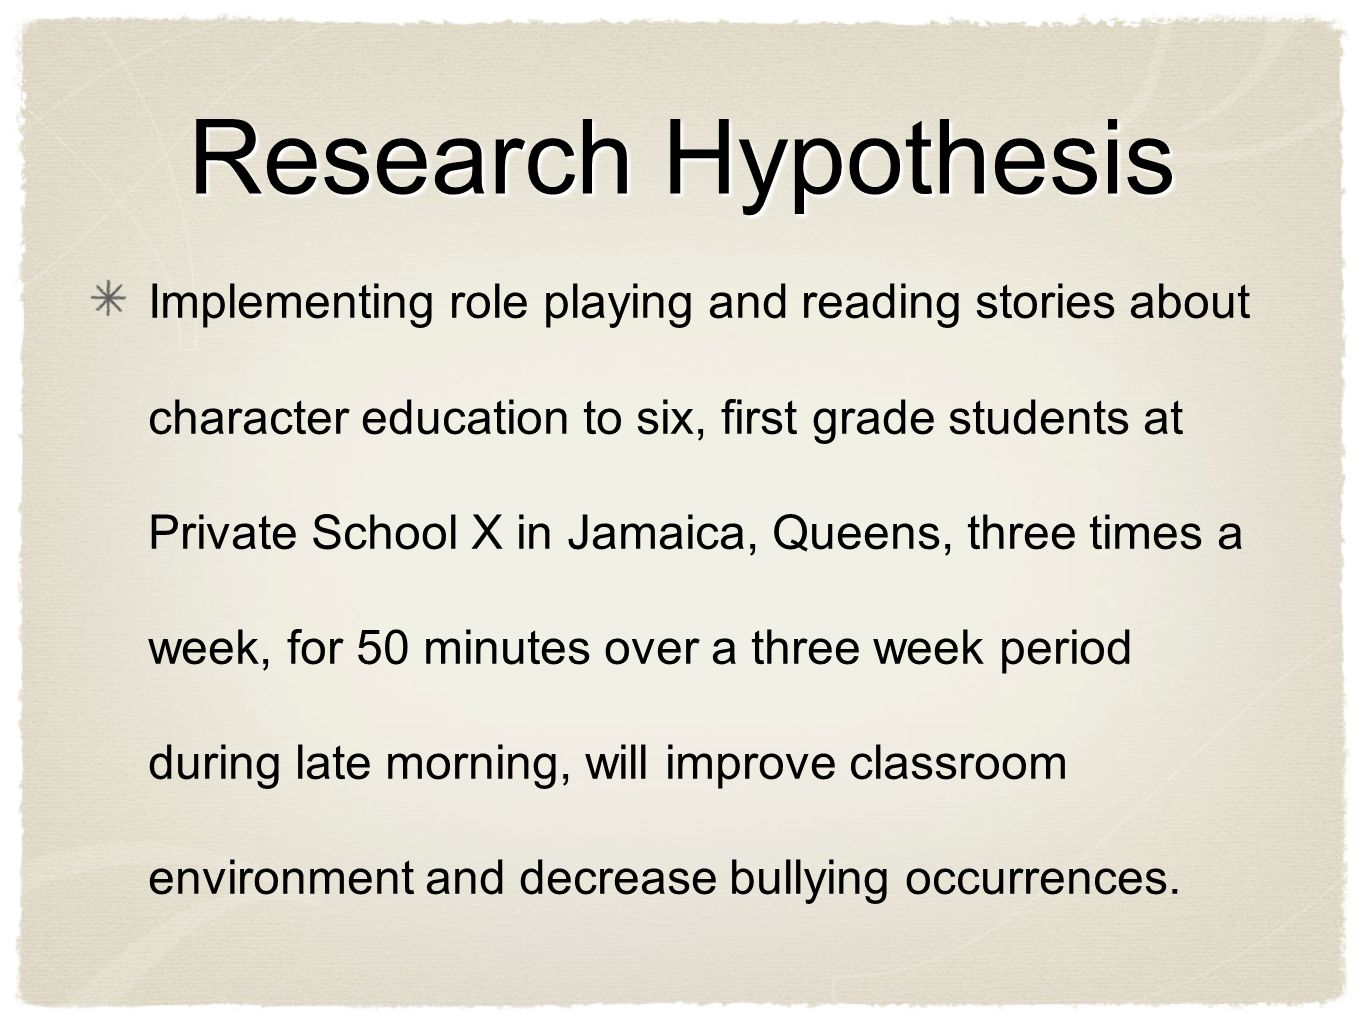 Method Participants: Six first grade students, 4 boys and 2 girls (4 Caucasian students, 1 African American student, and 1 Asian student).